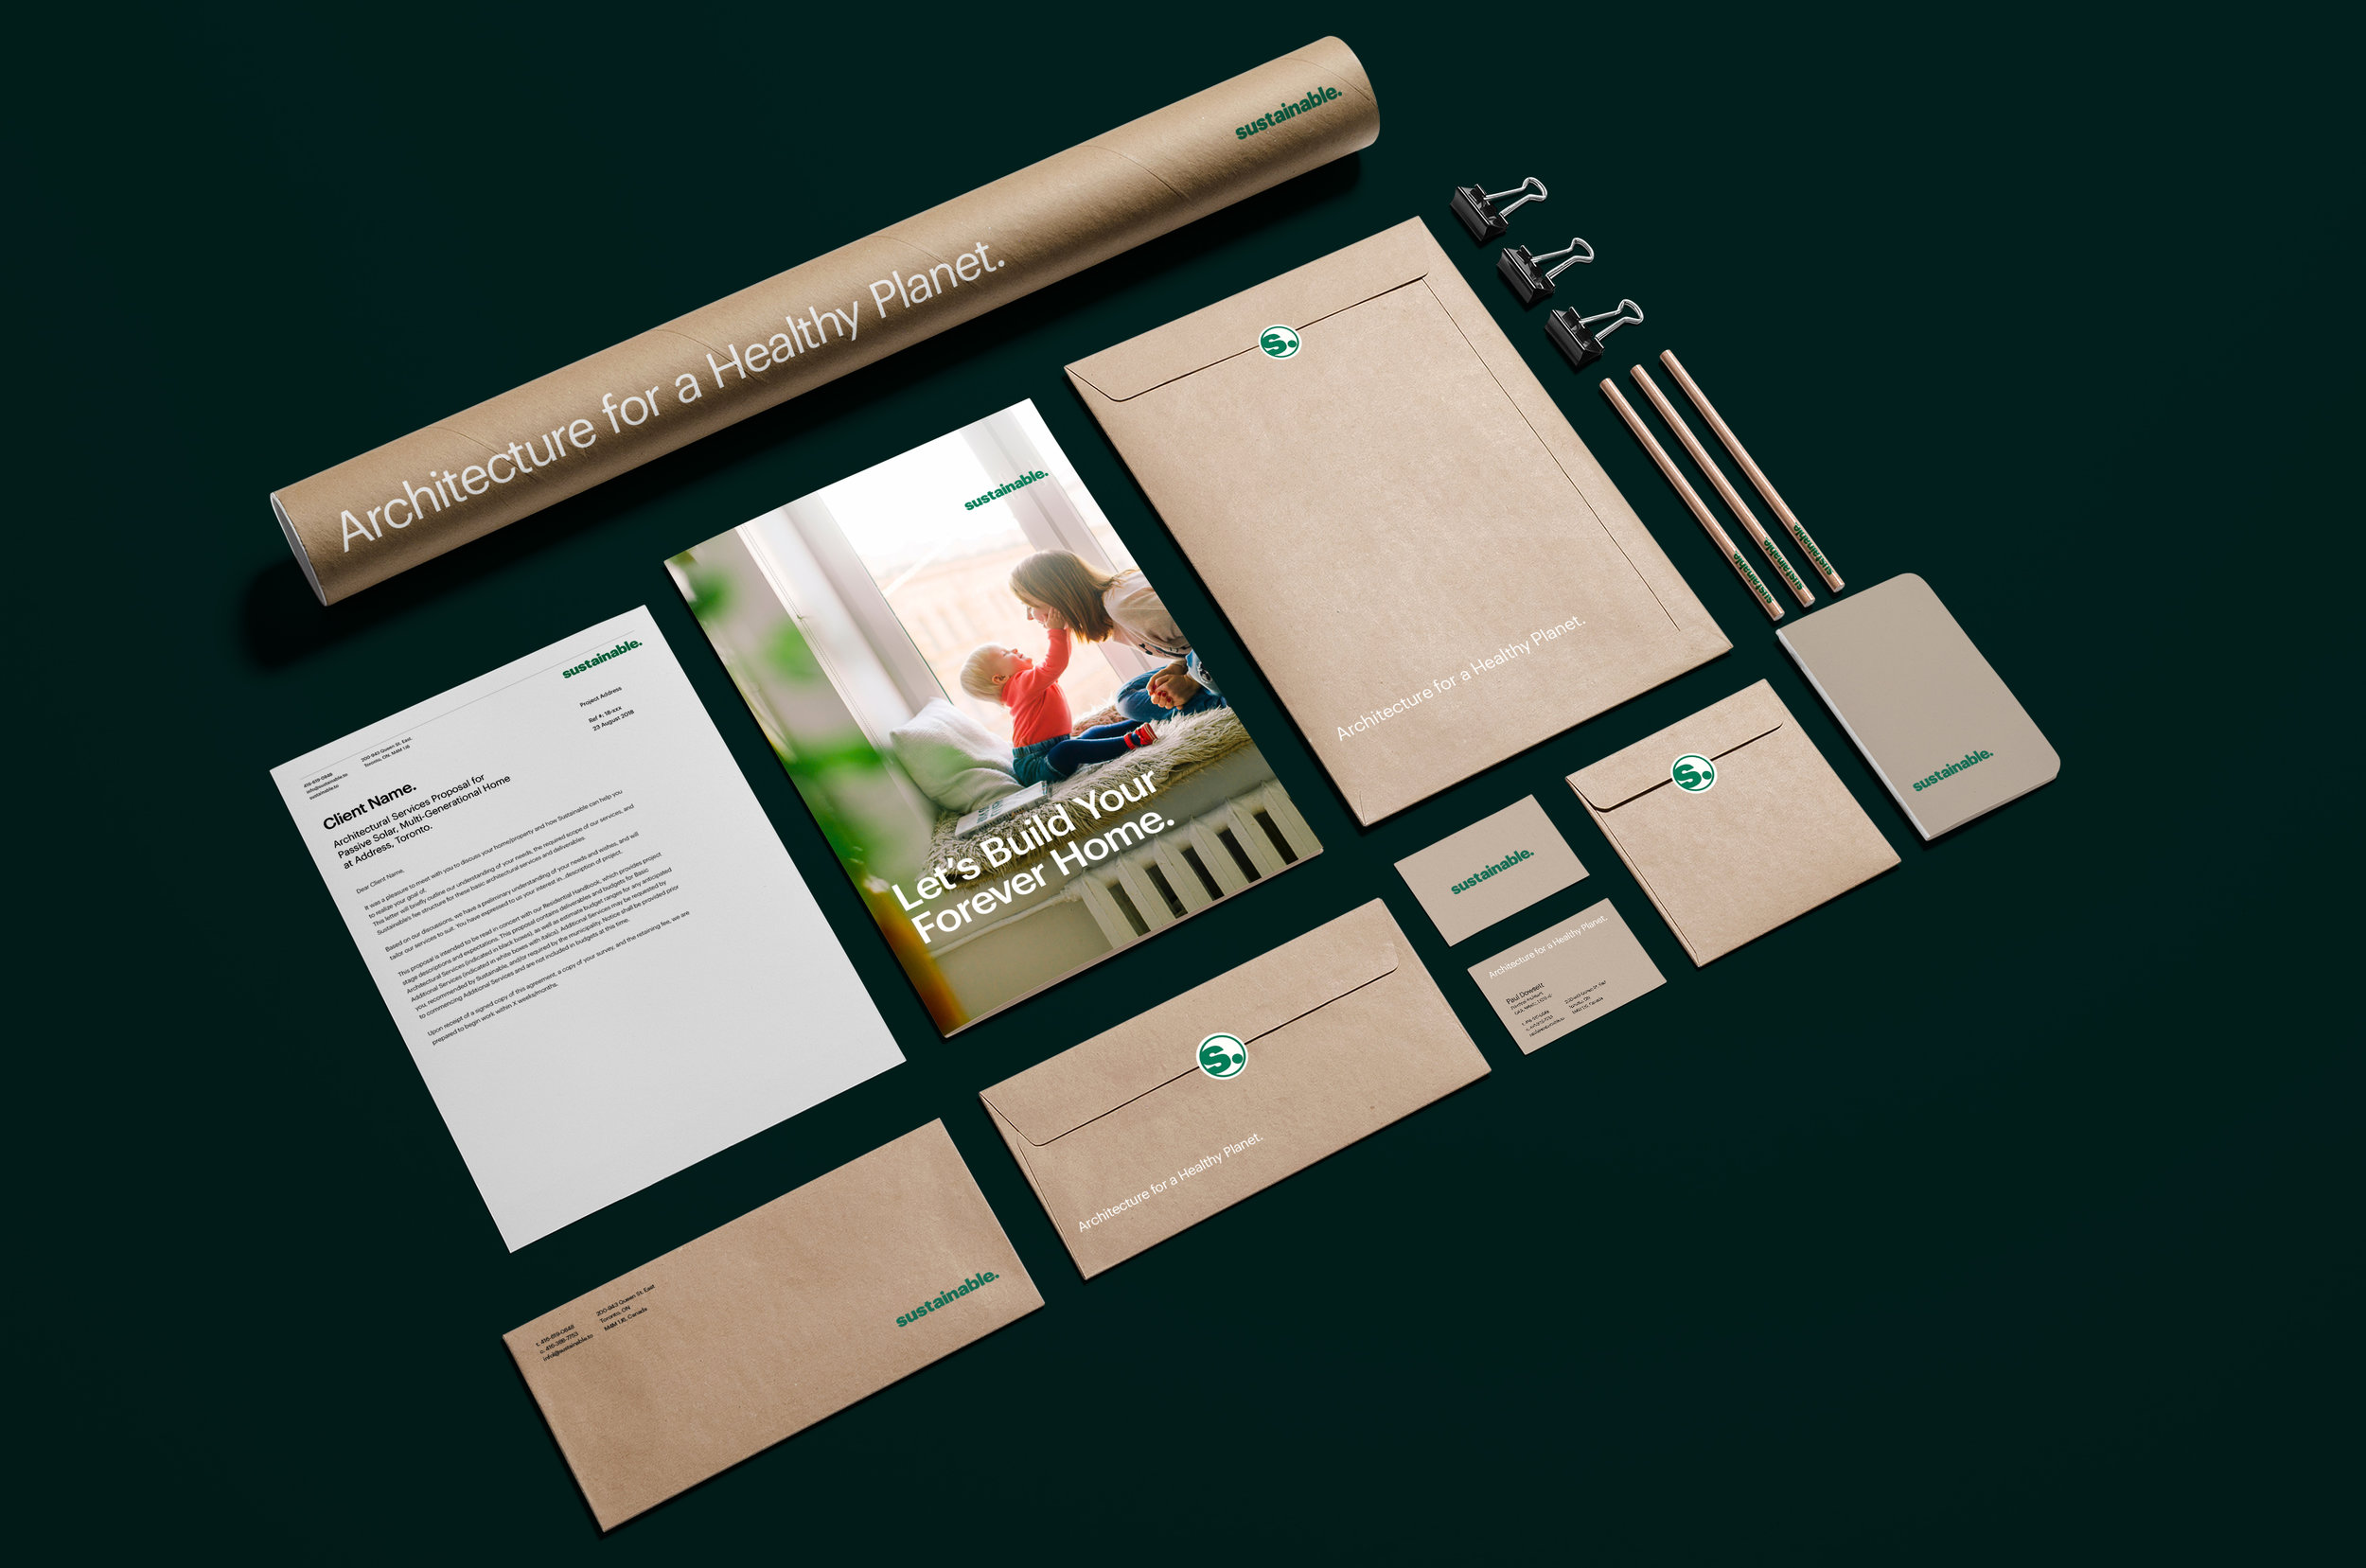 Naming, a Brand Identity, and Initial Marketing Materials -